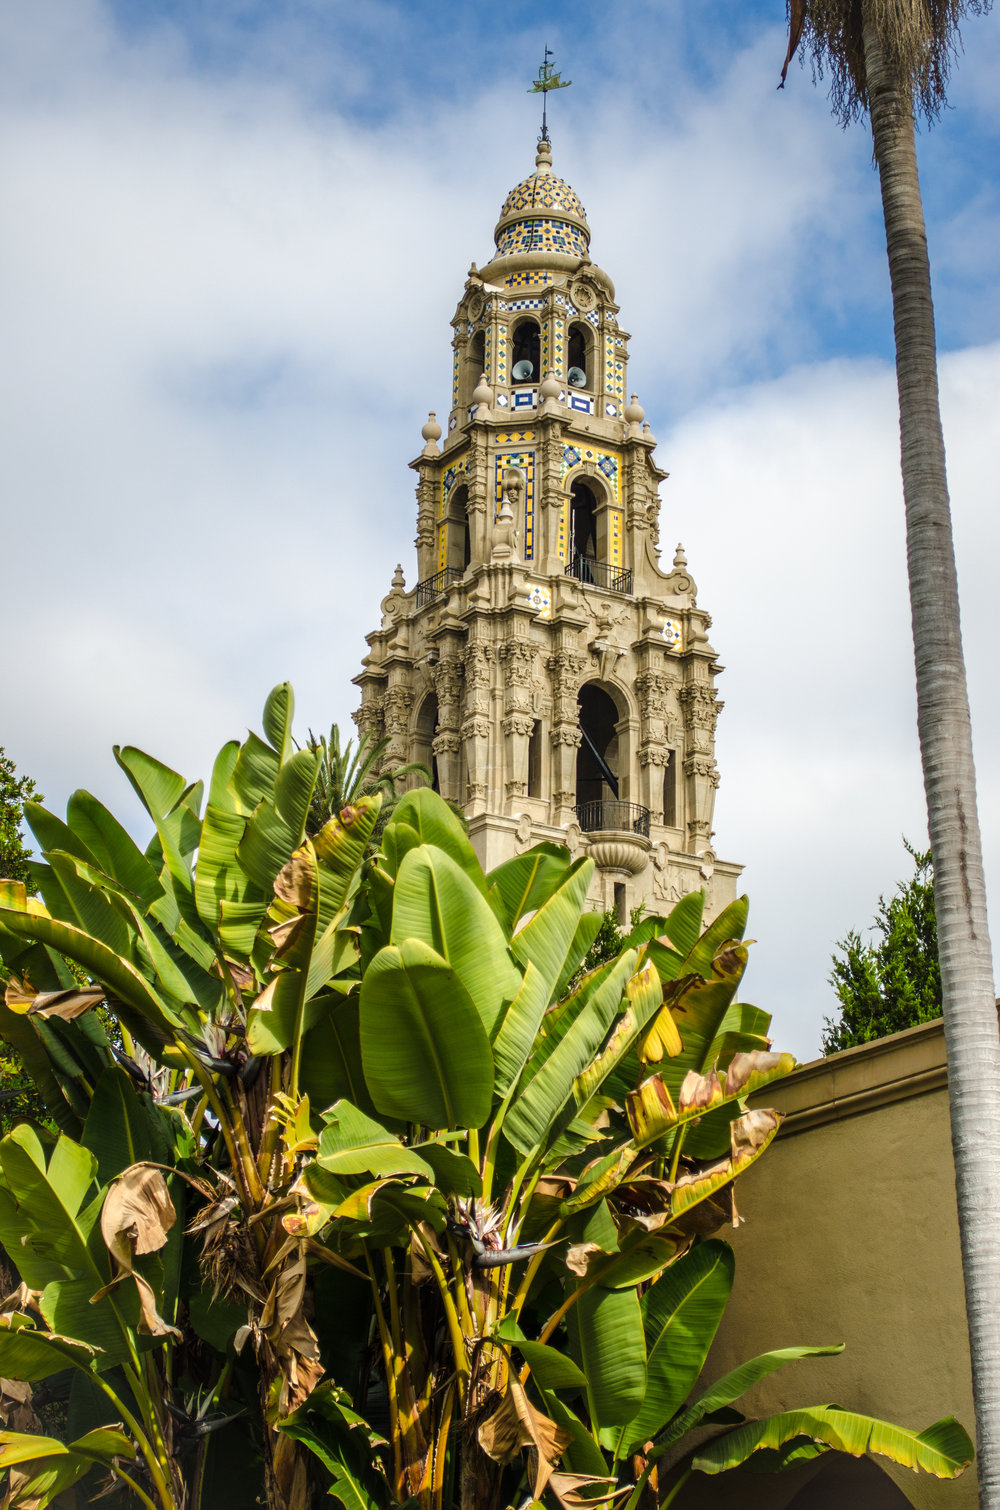 Another beautiful photo by my brother-in-law, Alex Mueller Photography of the Museum of Man in Balboa Park